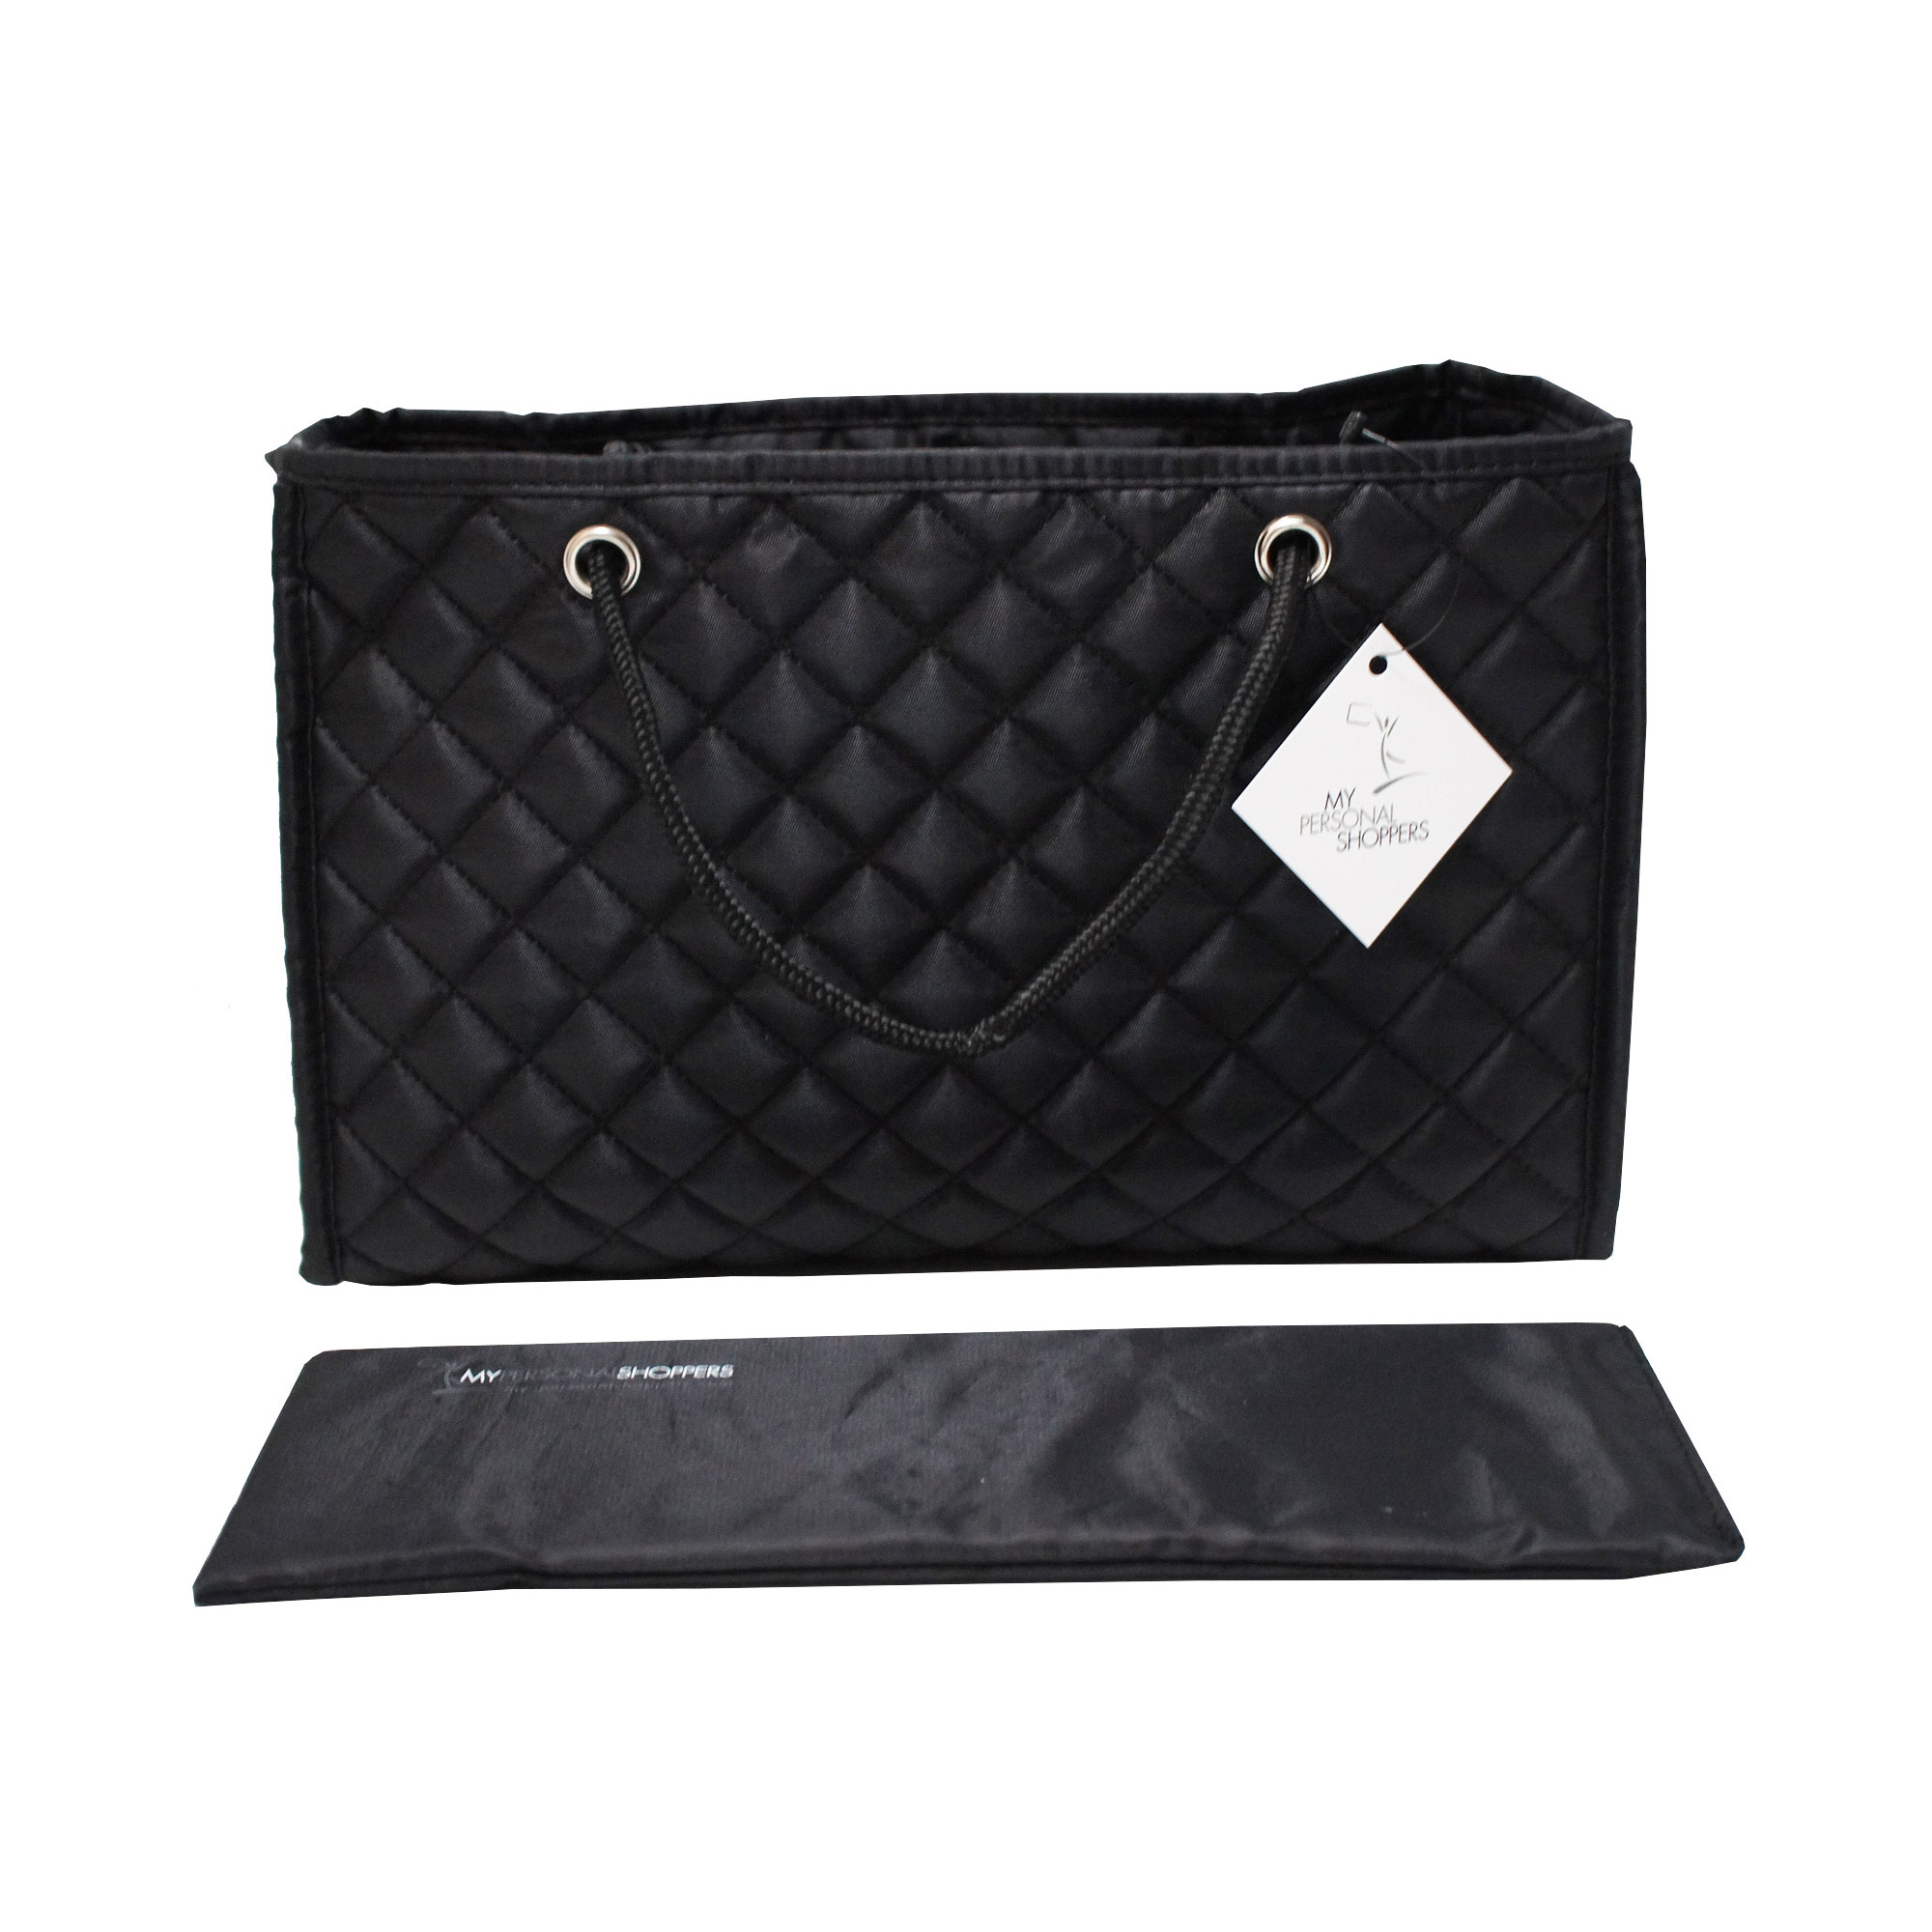 eb6d3bf670415 Zoe Quilted Handbag Organizer Insert with Removable Base (Large ...